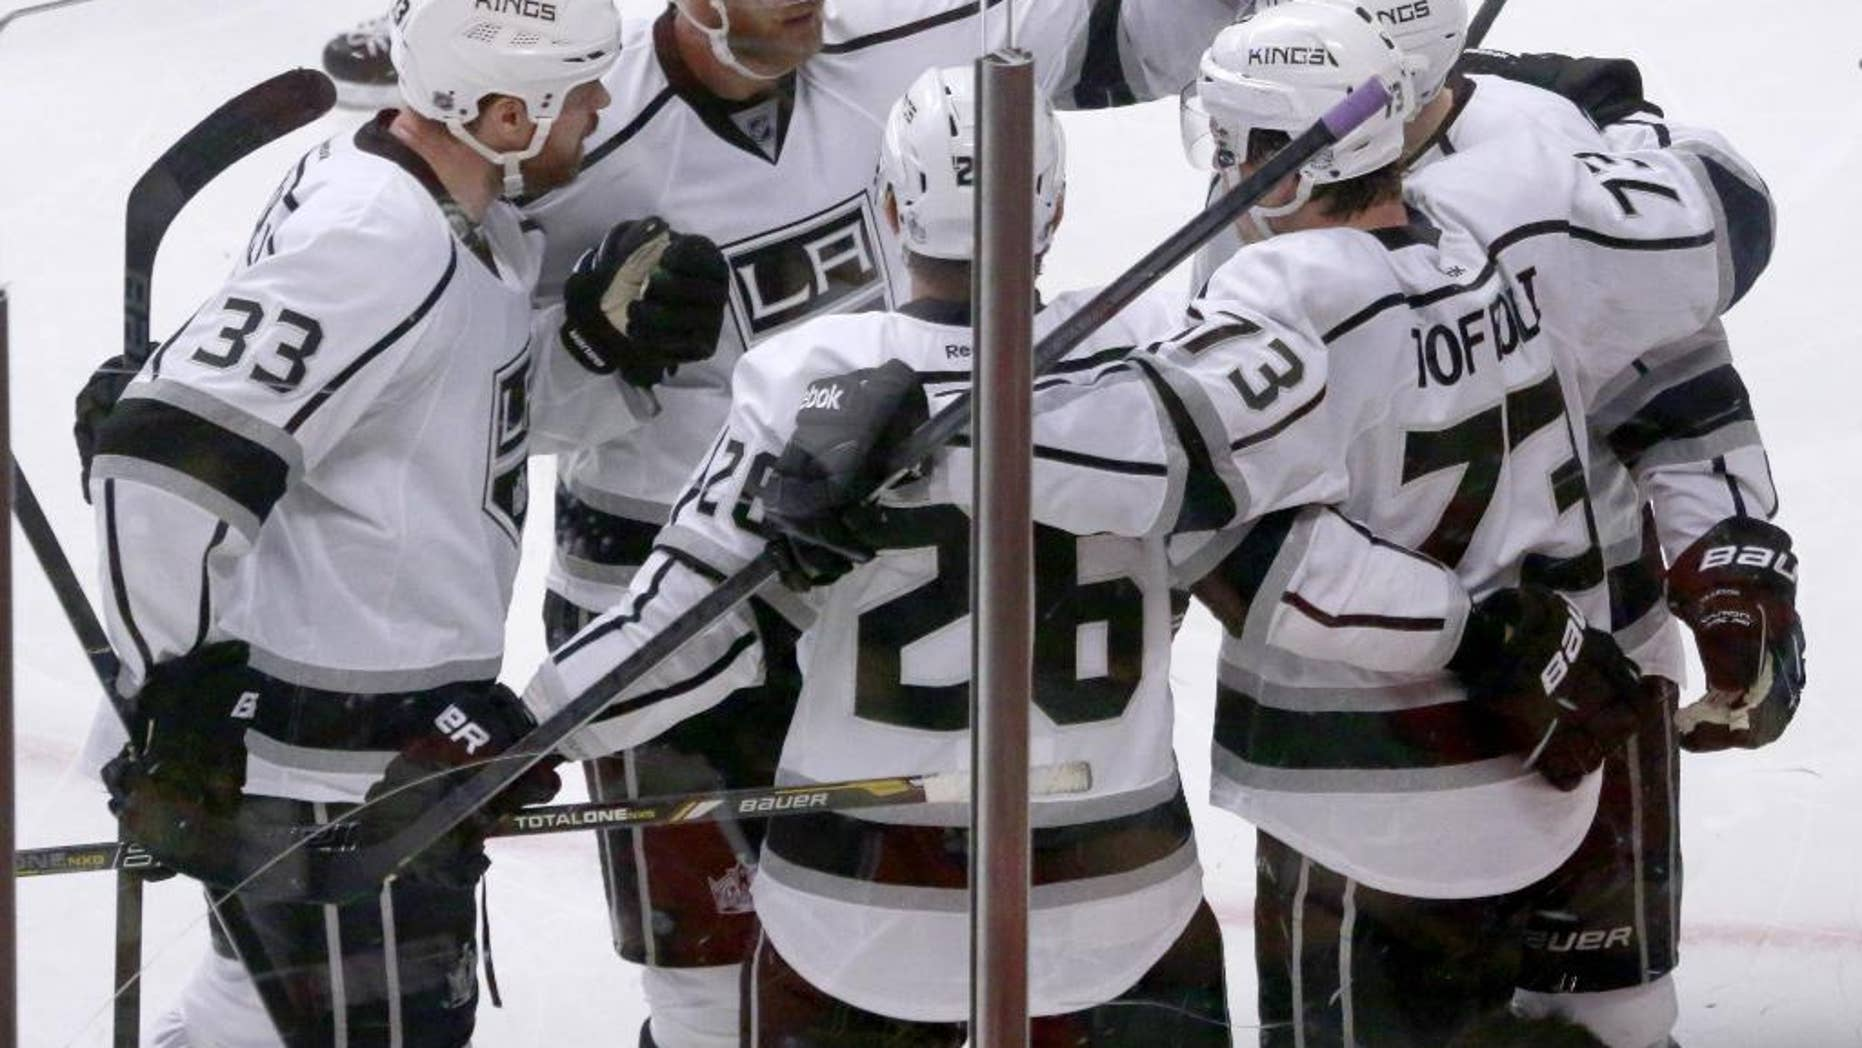 The Los Angeles Kings gather around center Tyler Toffoli as they celebrate Toffoli's goal during the third period of Game 2 of the Western Conference finals in the NHL hockey Stanley Cup playoffs against the Chicago Blackhawks on Wednesday, May 21, 2014, in Chicago. From left are Willie Mitchell (33), Jeff Carter (77), Slava Voynov (26), Toffoli, and Tanner Pearson. (AP Photo/Charles Rex Arbogast)